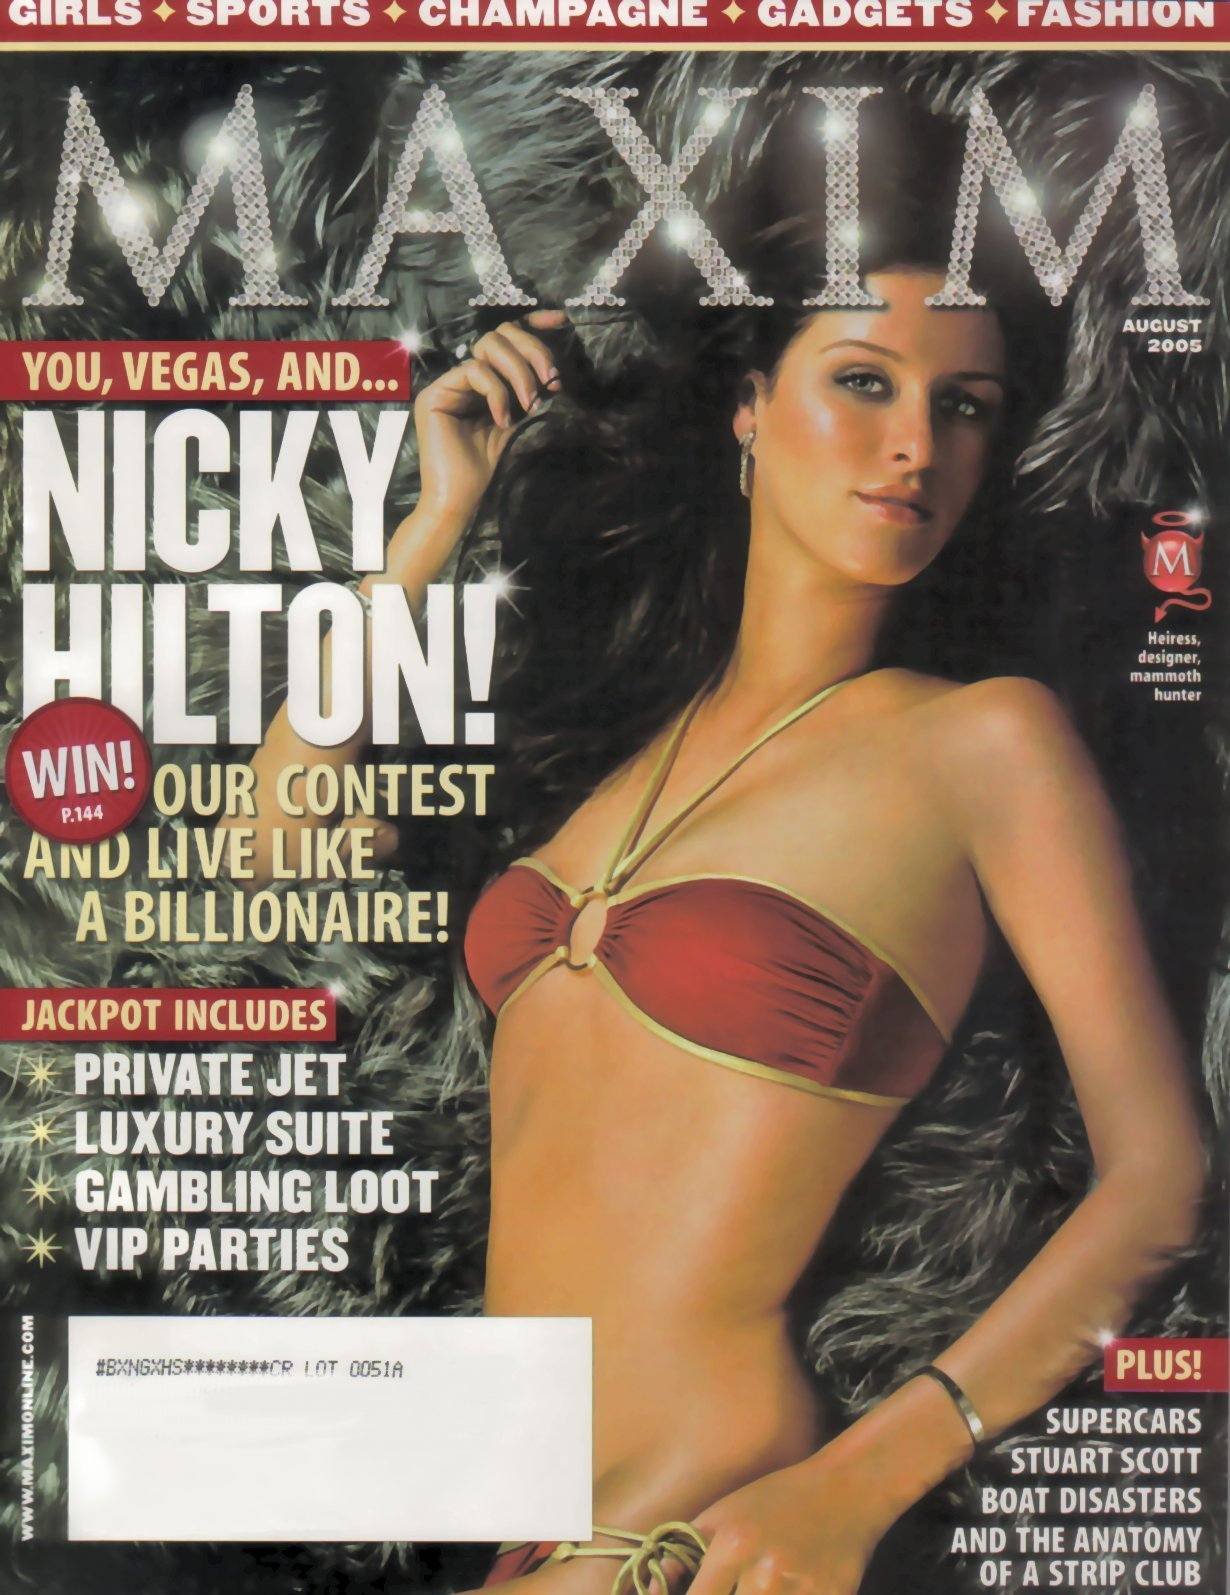 Maxim Magazine Nicky Hilton August 2005 Issue ebook